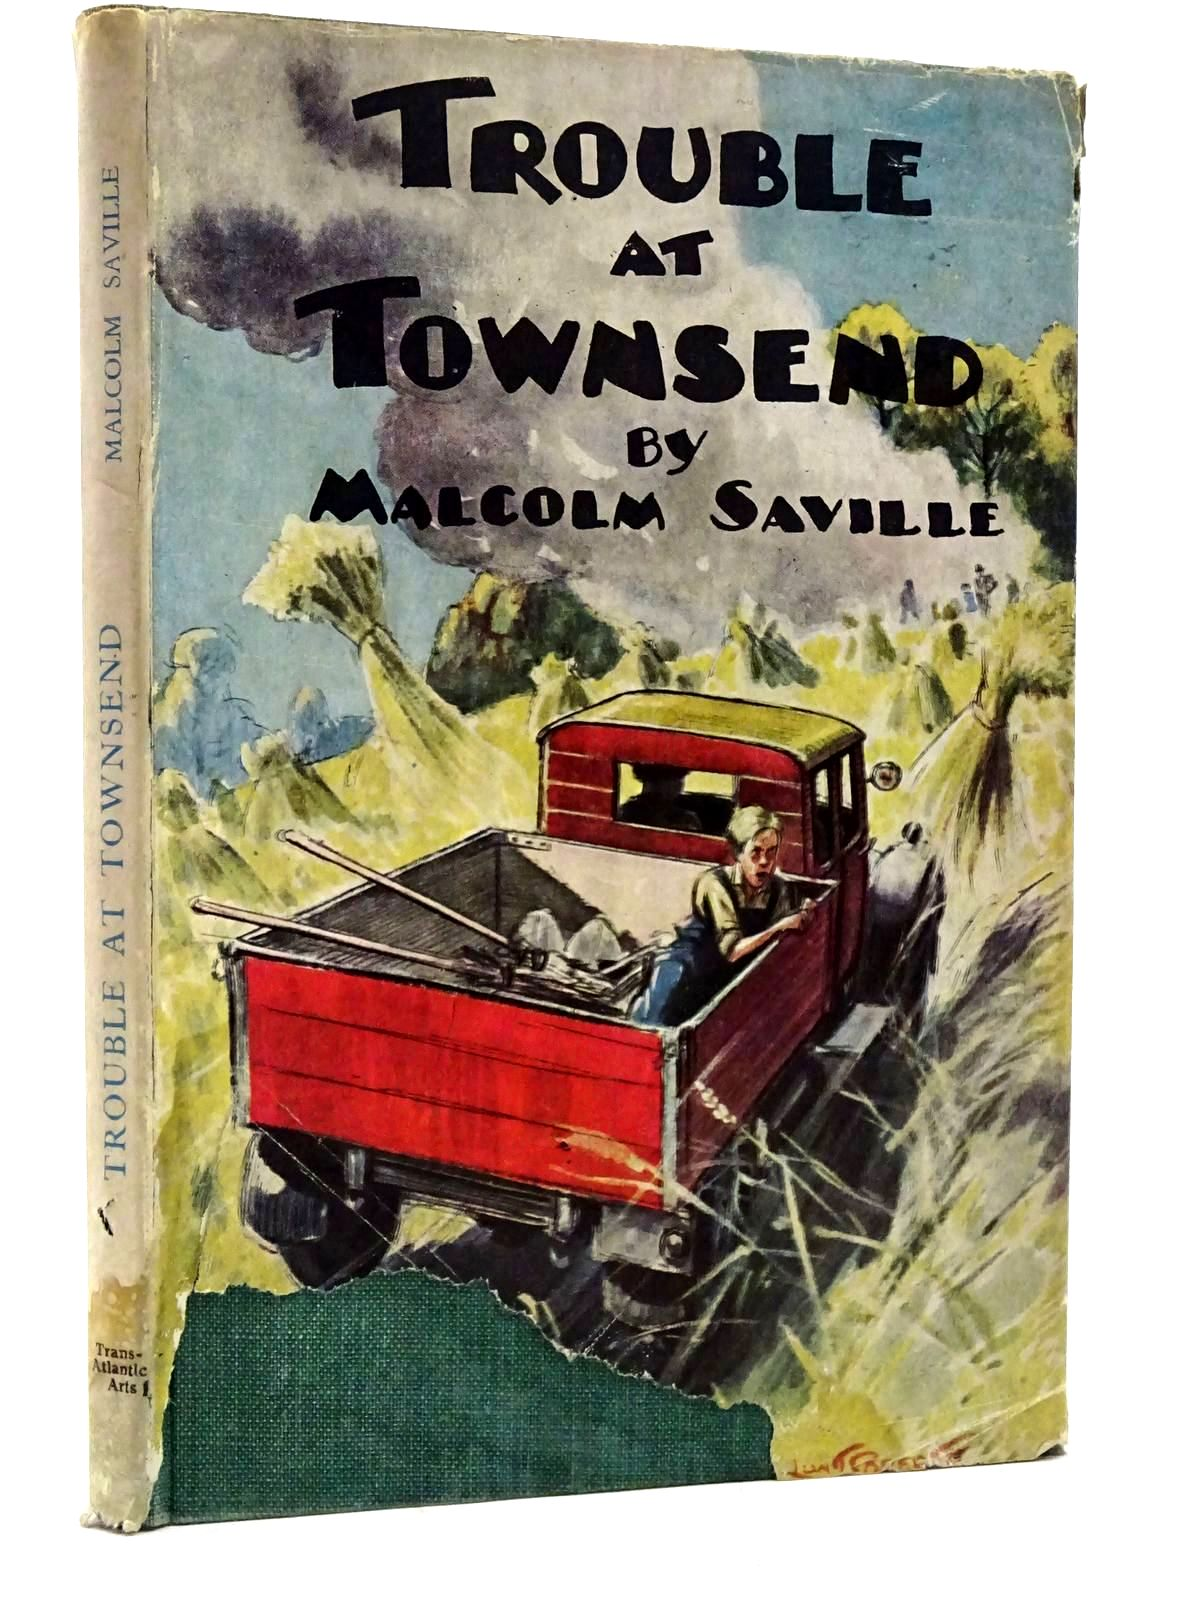 Photo of TROUBLE AT TOWNSEND written by Saville, Malcolm illustrated by Roberts, Lunt published by Transatlantic Arts Ltd. (STOCK CODE: 2131550)  for sale by Stella & Rose's Books